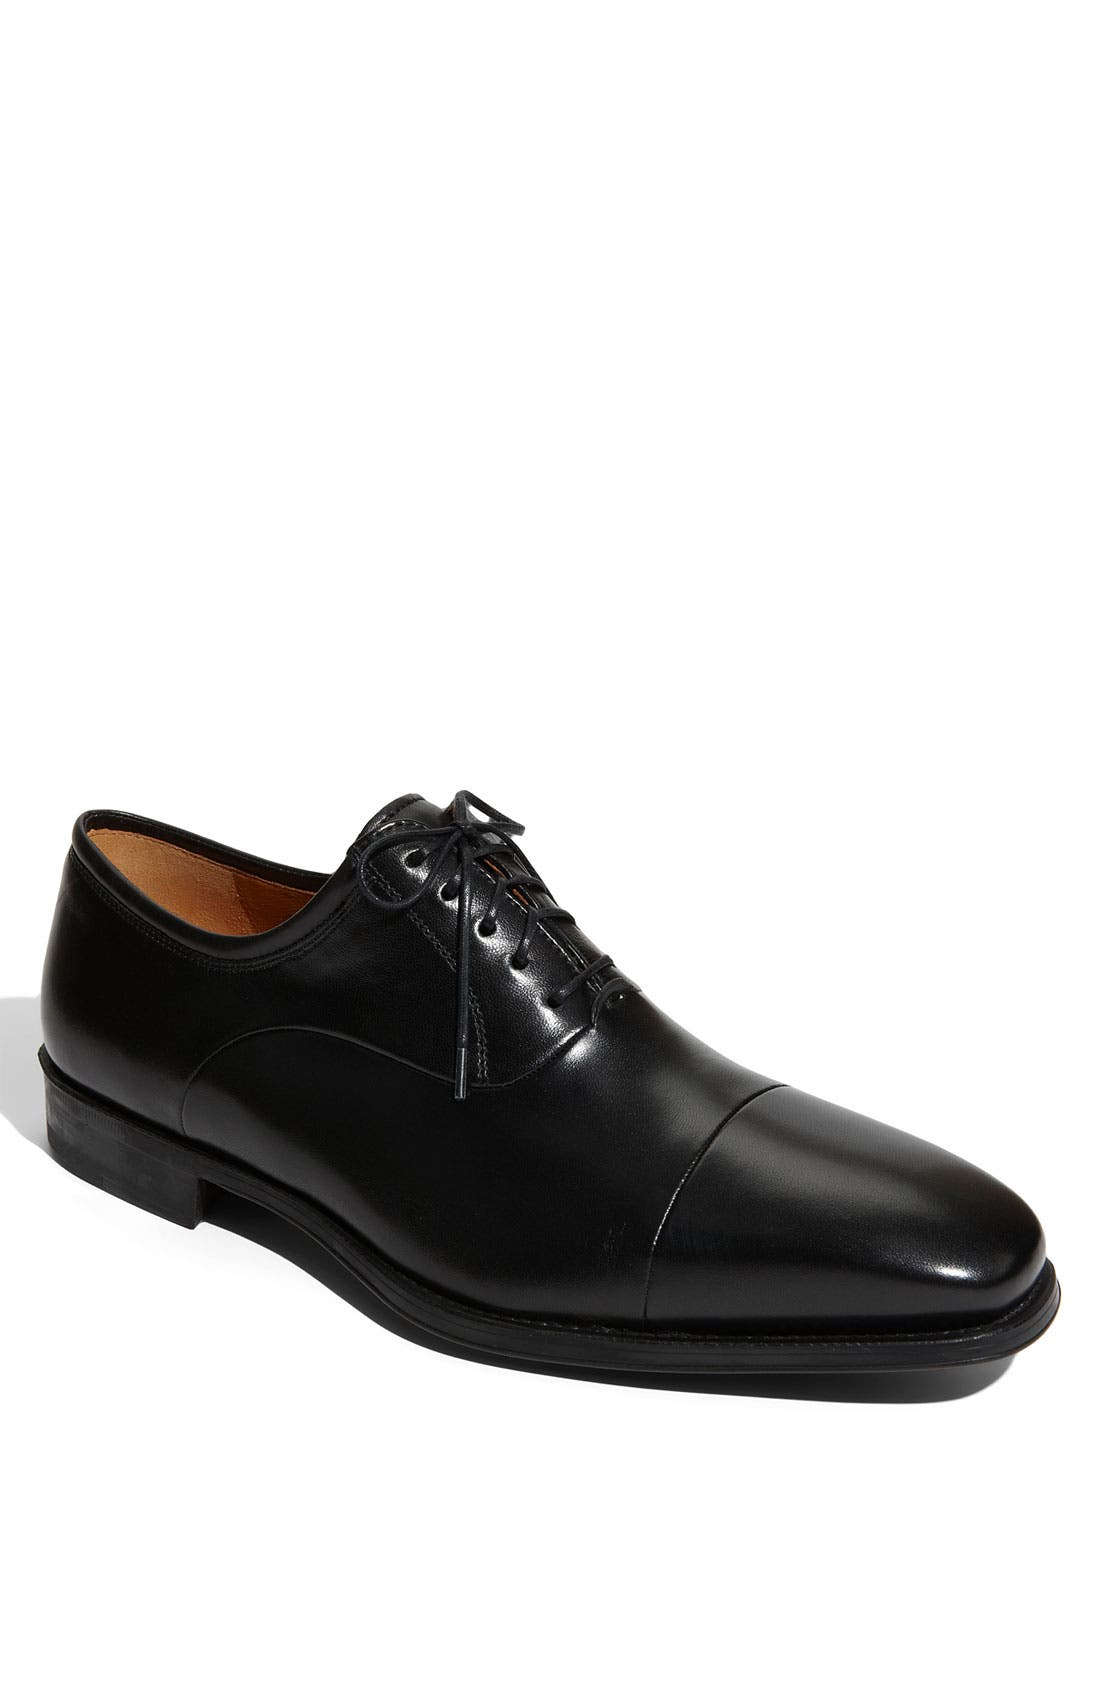 'Federico' Oxford,                             Main thumbnail 1, color,                             Black